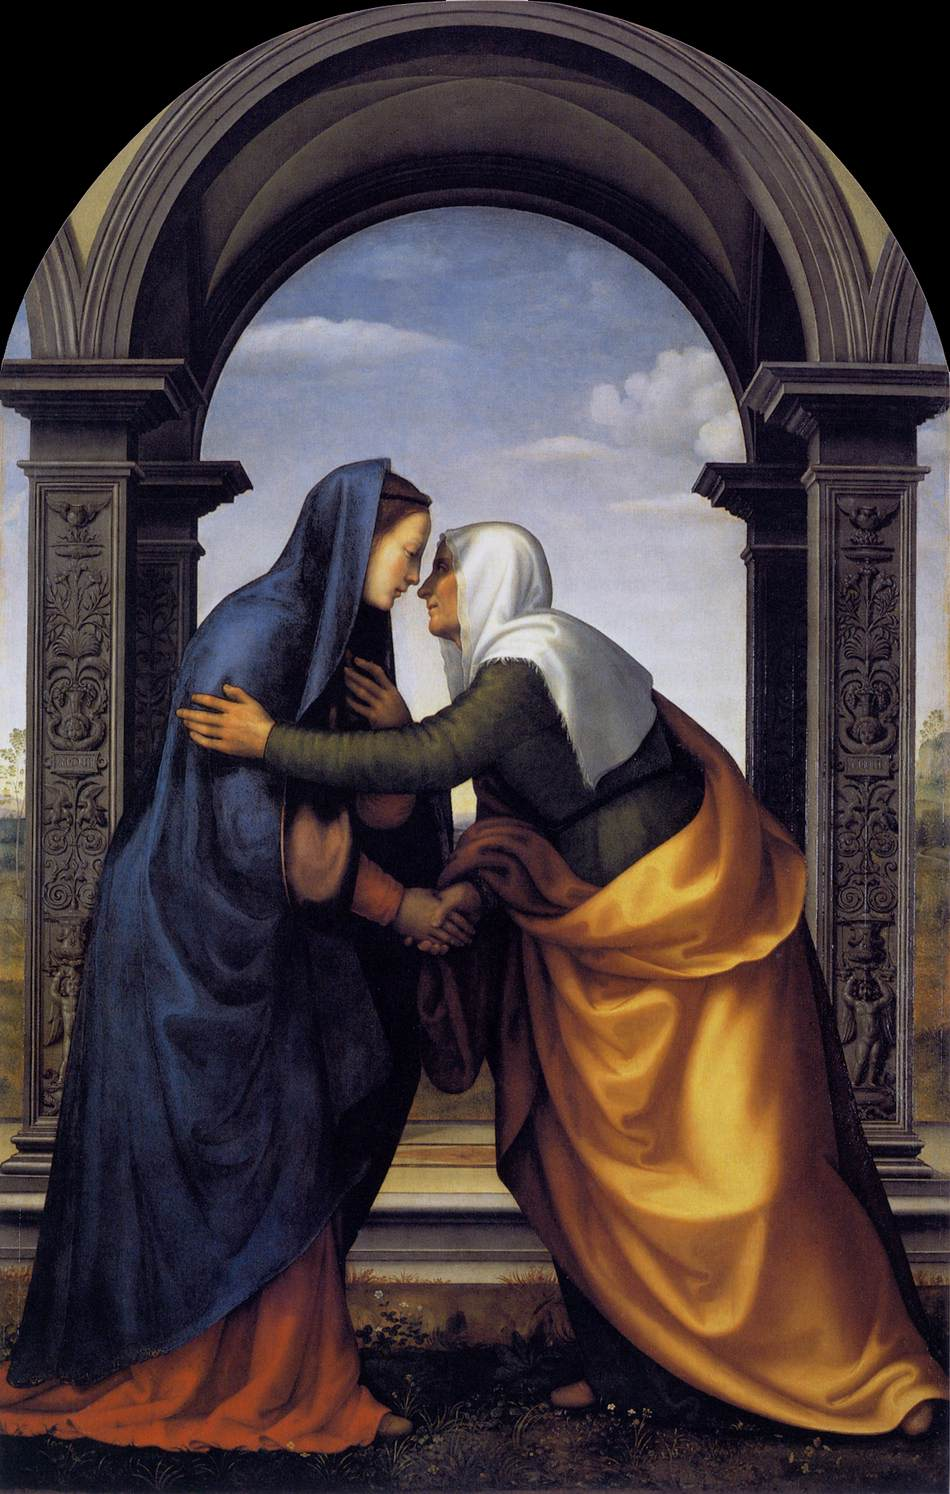 Mary visits Elizabeth. Image located on Web Gallery of Art at https://www.wga.hu.